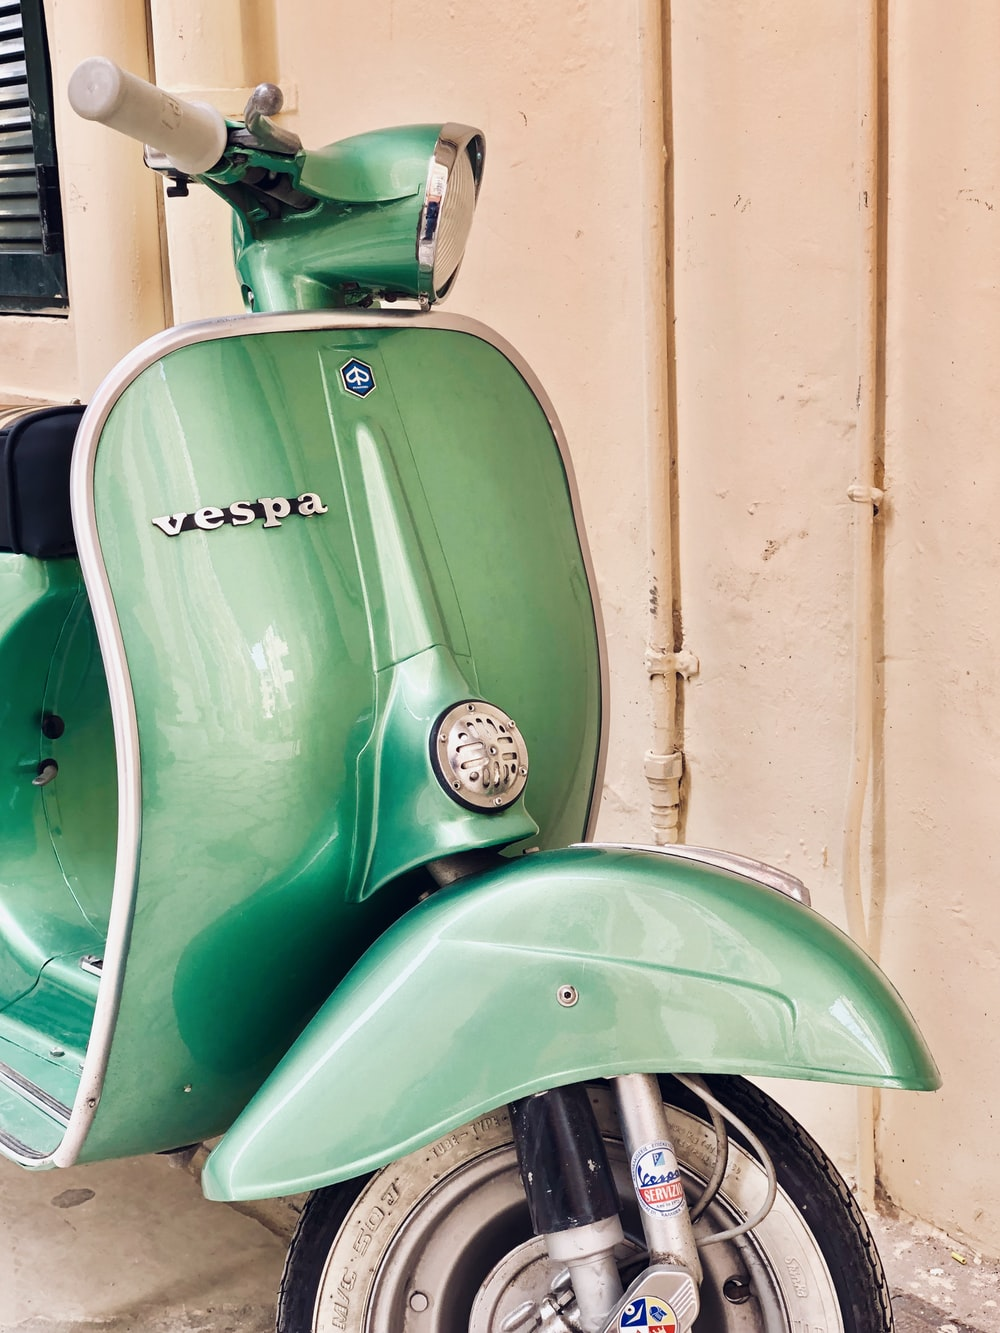 green and white Vespa motor scooter near white wall